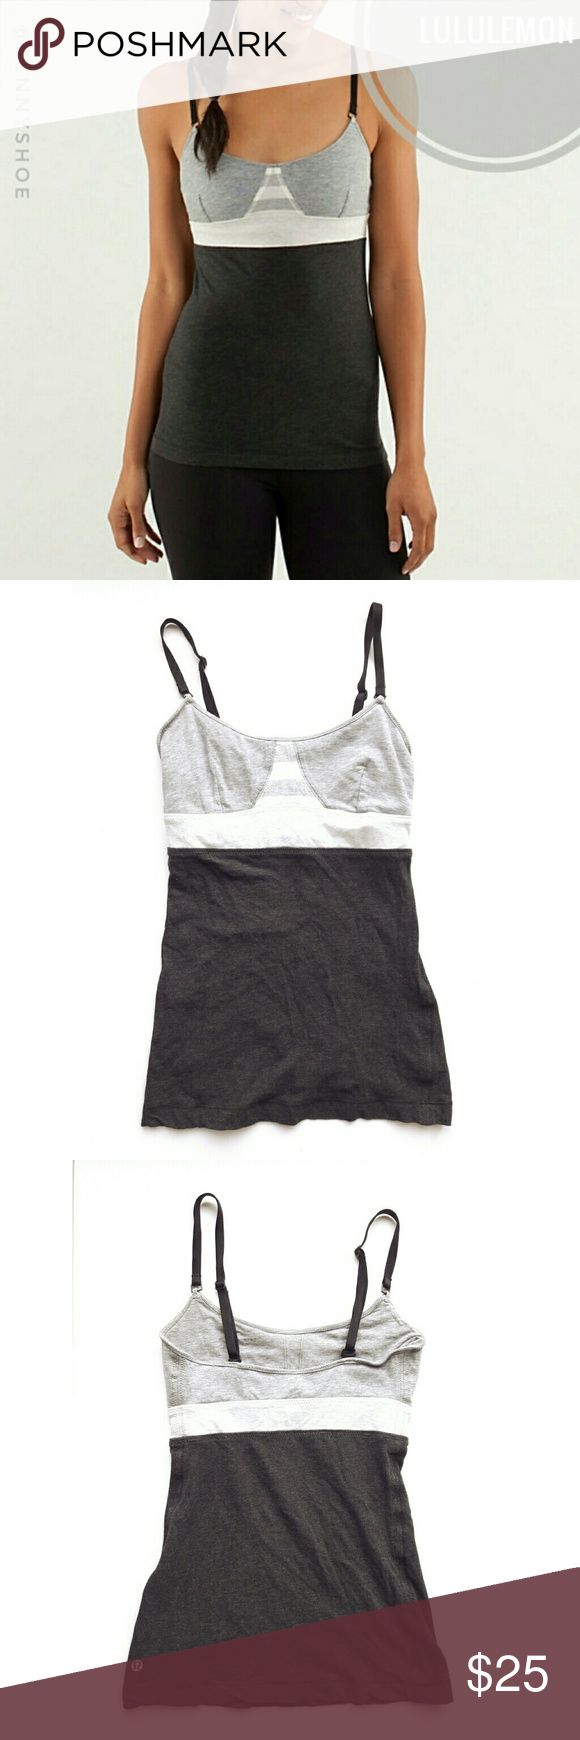 """{lululemon} workout tank top An authentic """"contentment triangle"""" top from Lululemon Athletica  Girly and fun colorblocked design  Built in shelf bra- unpadded, but has openings where you can add in soft cups if you would like (not included)  Gently worn Size 2- tags have been cut for comfort lululemon athletica Tops Tank Tops"""